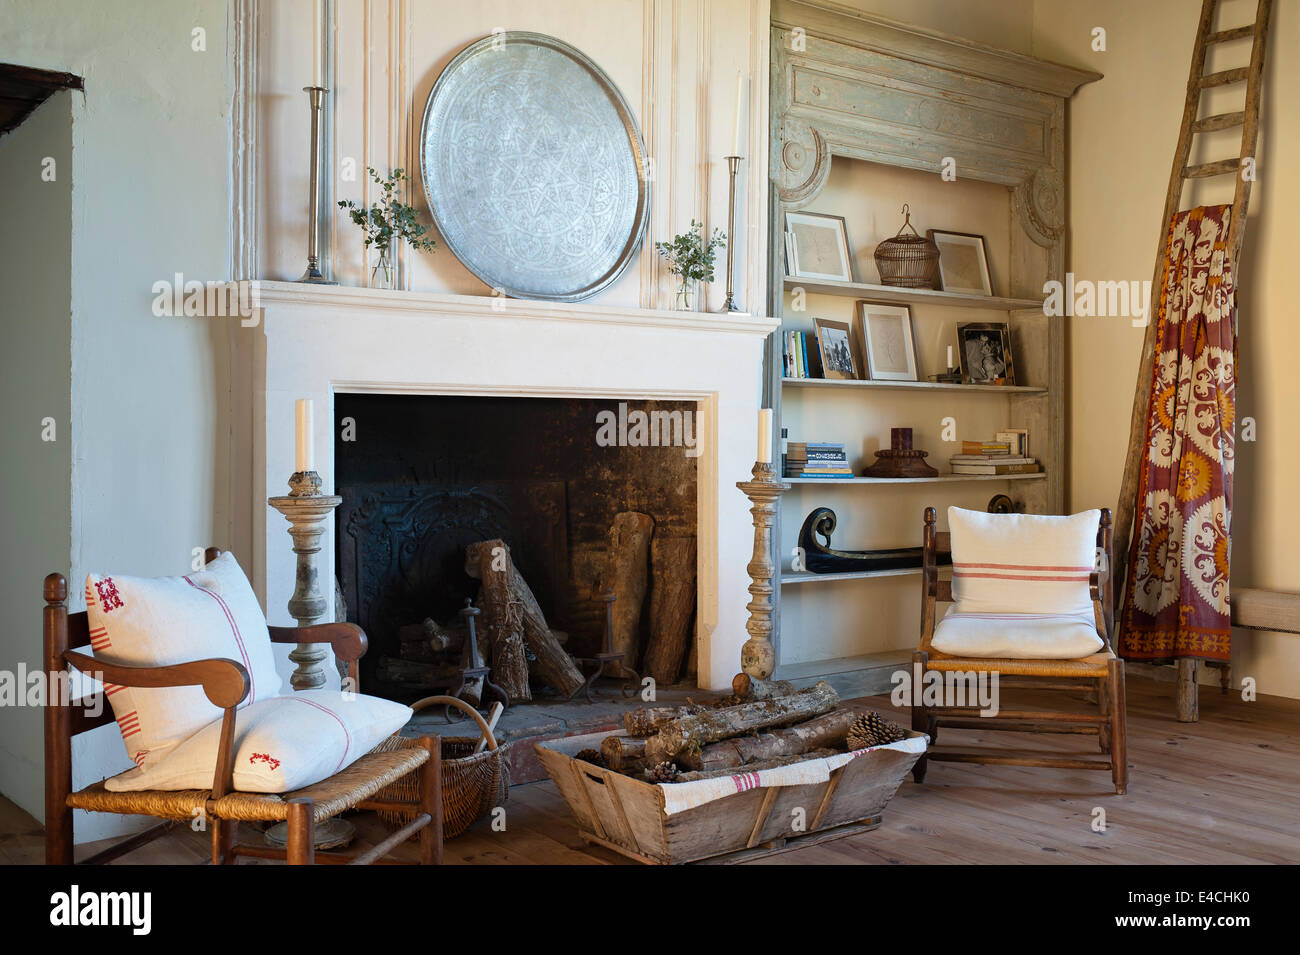 Large Fireplace Antique Stock Photos & Large Fireplace Antique ...